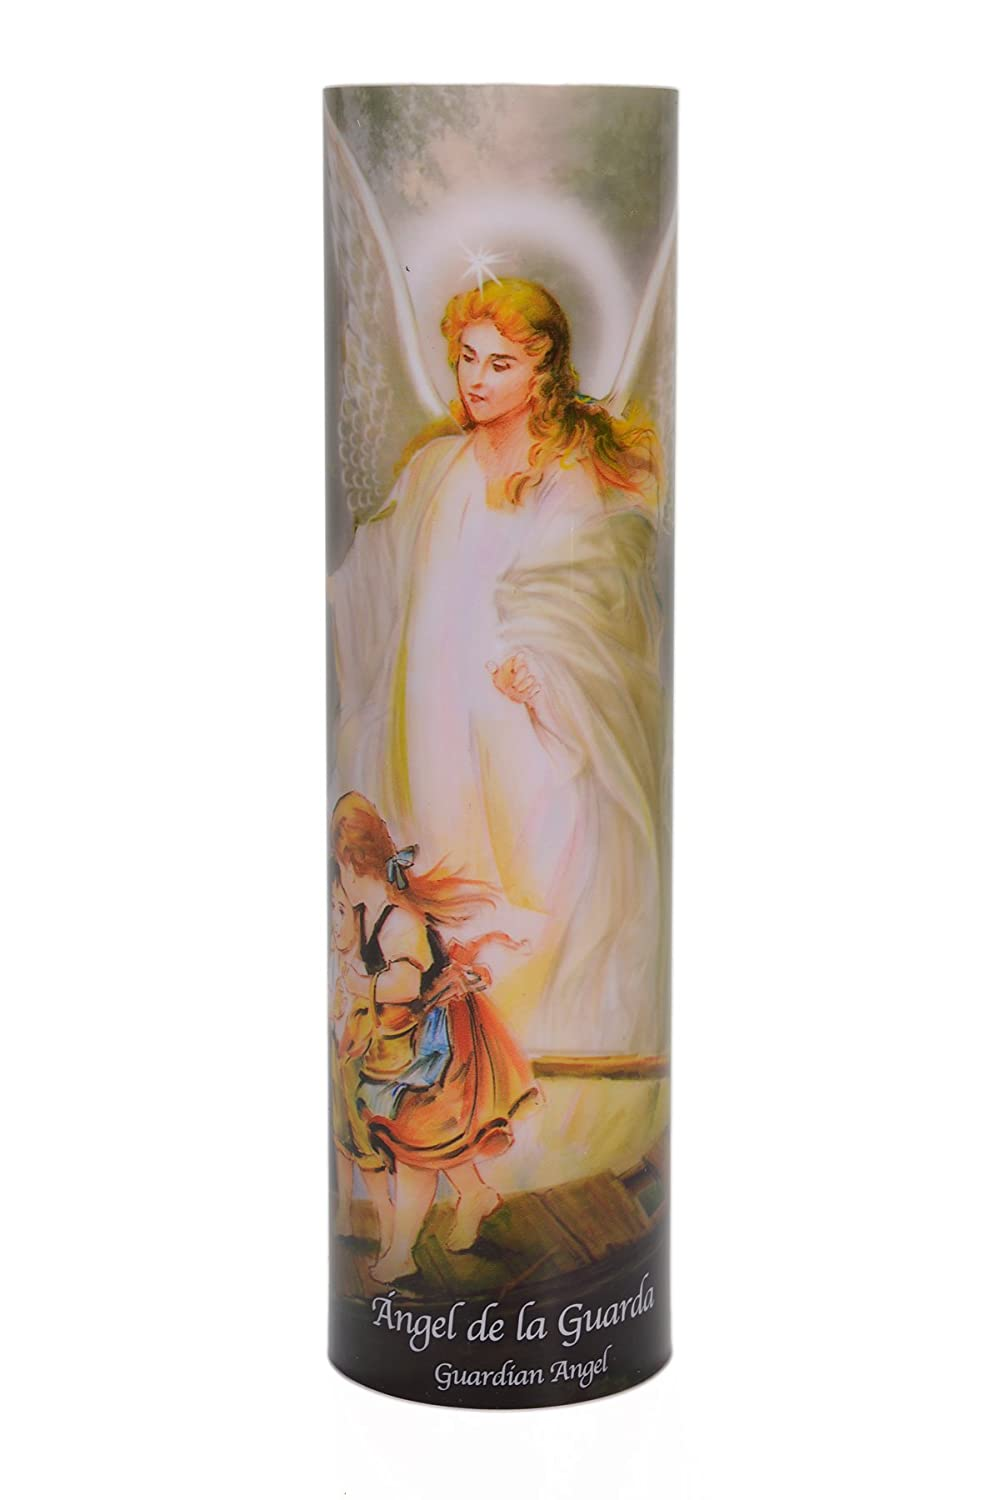 Guardian Angel, LED Flameless Devotion Prayer Candle, 4 Hour Timer, Religious Gift The Saints Gift Collection SB-5263A